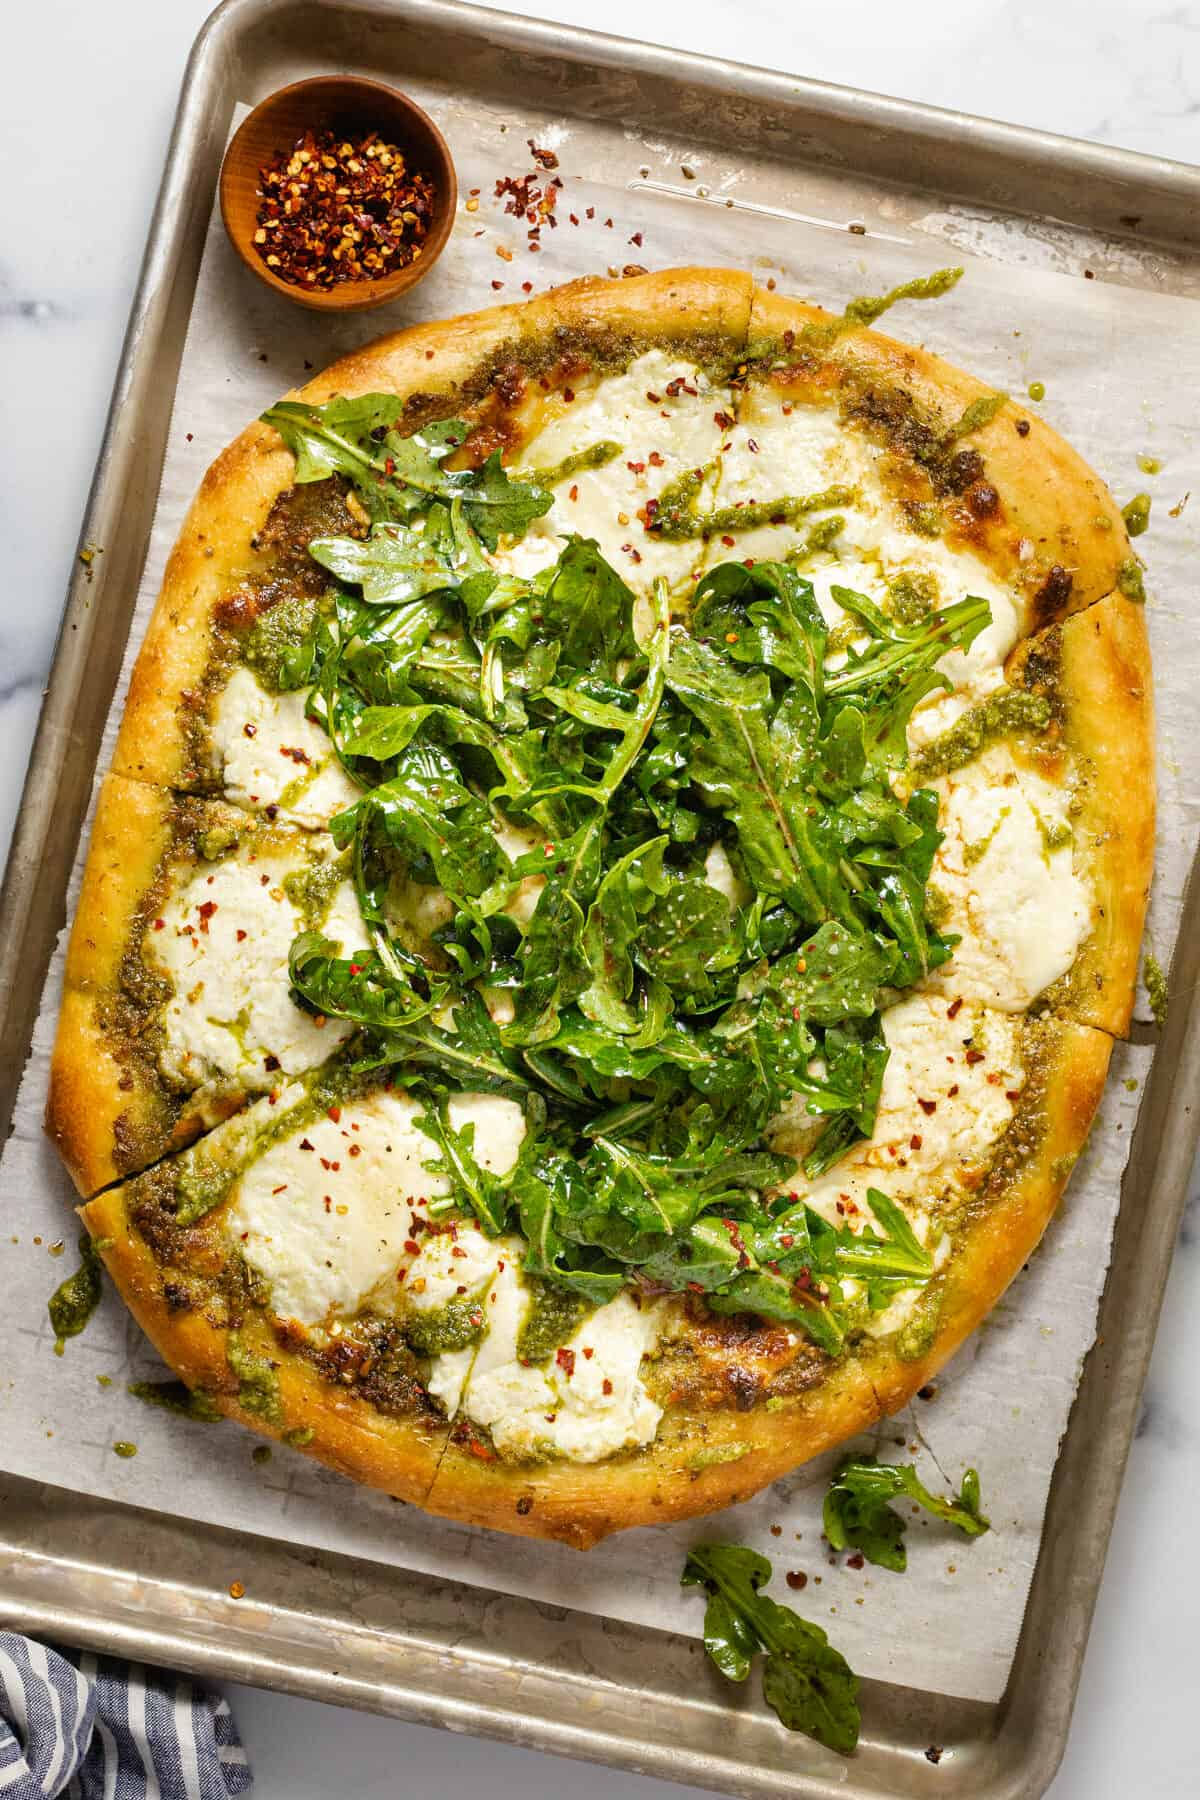 Parchment lined baking sheet with homemade burrata pizza garnished with arugula